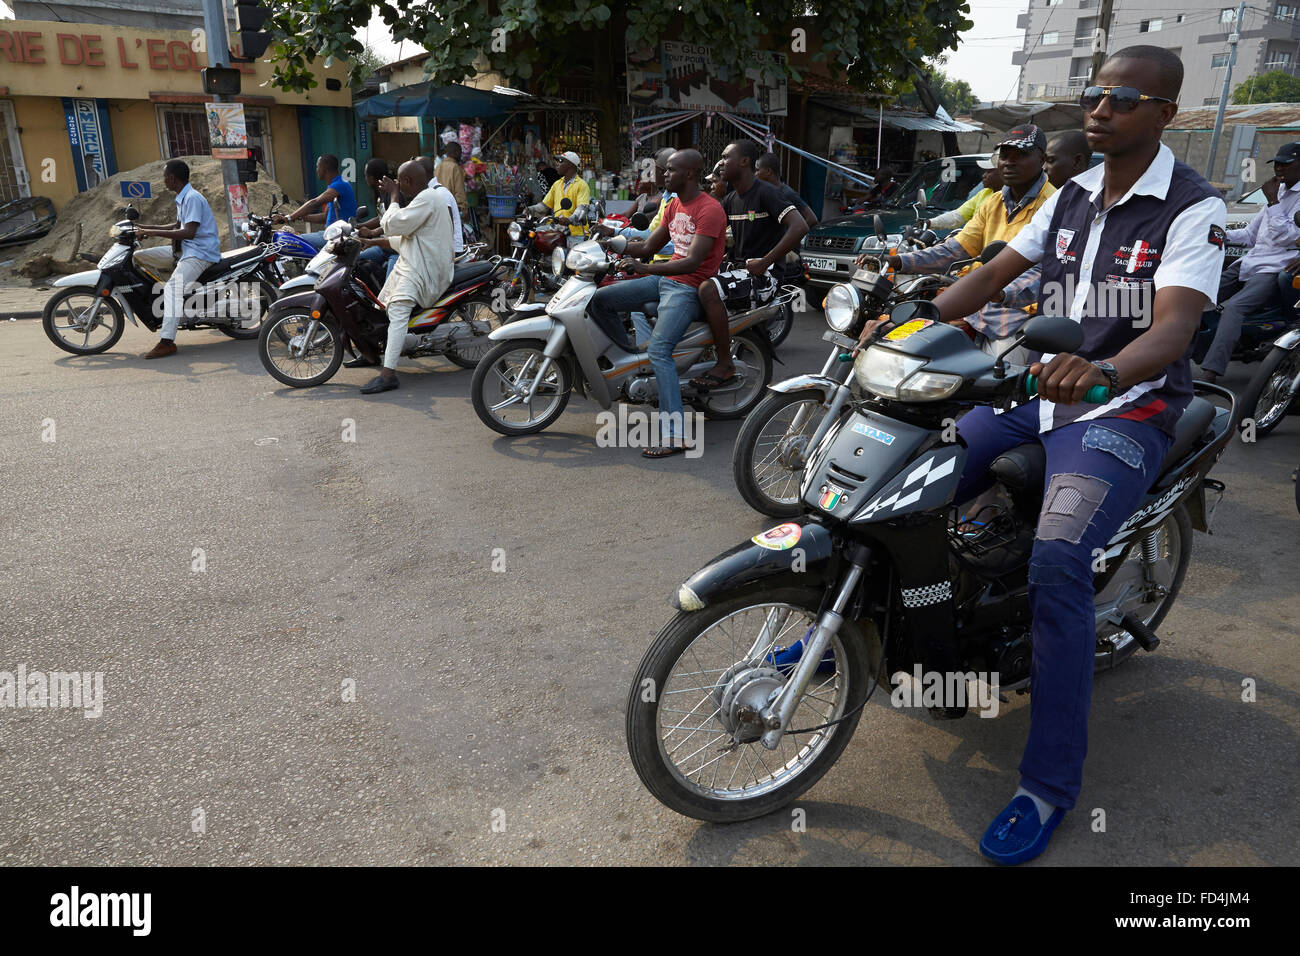 Motorcycles in Cotonou - Stock Image